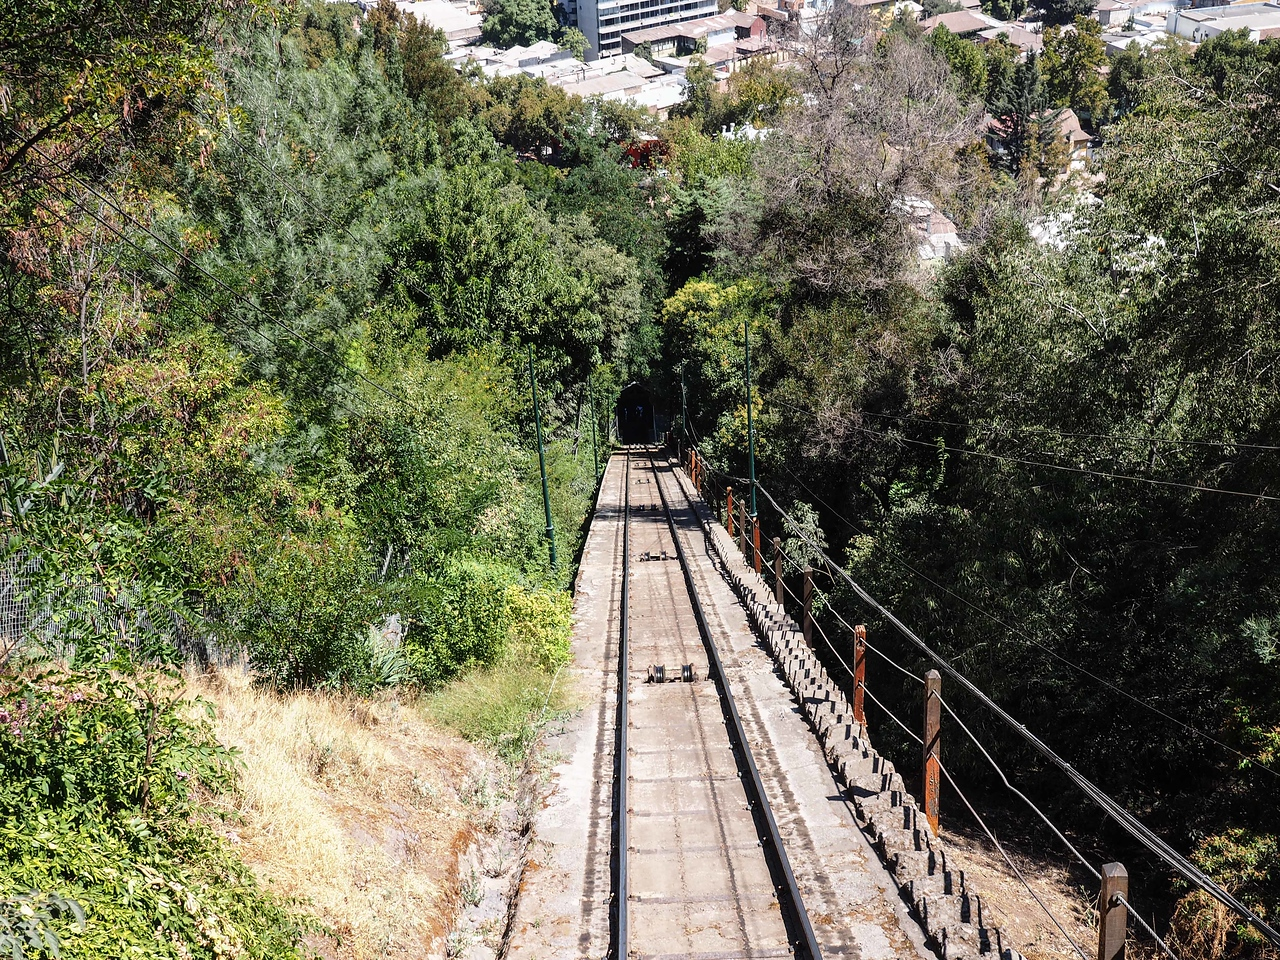 Riding the Funicular to the top of San Cristobal Hill